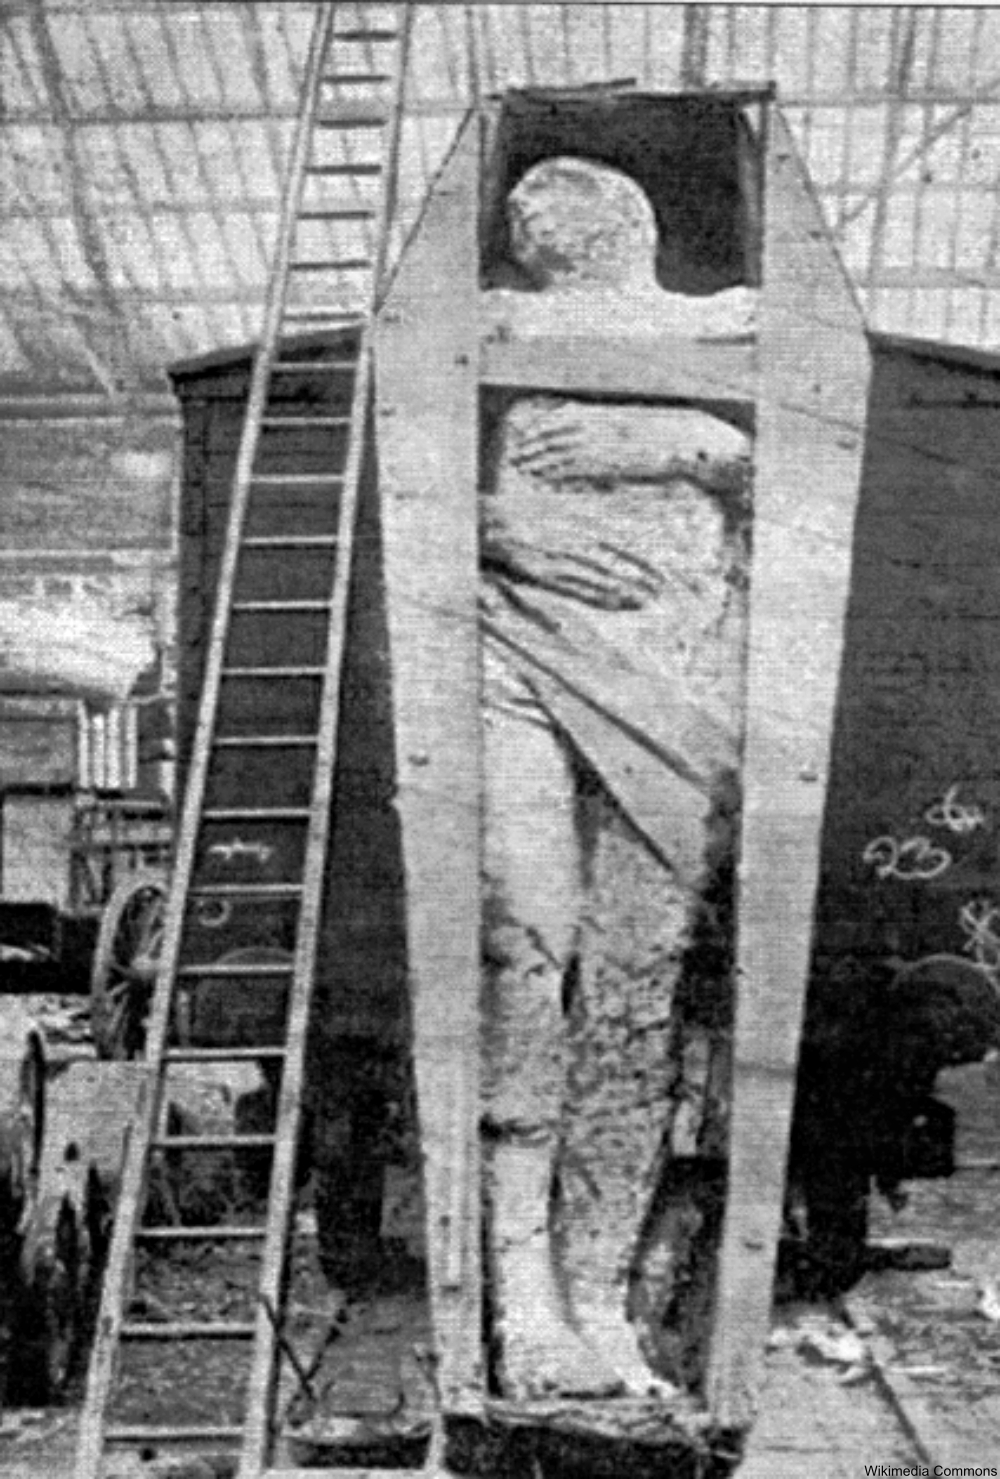 Antrim Giant, possibly inspired by the Cardiff Giant